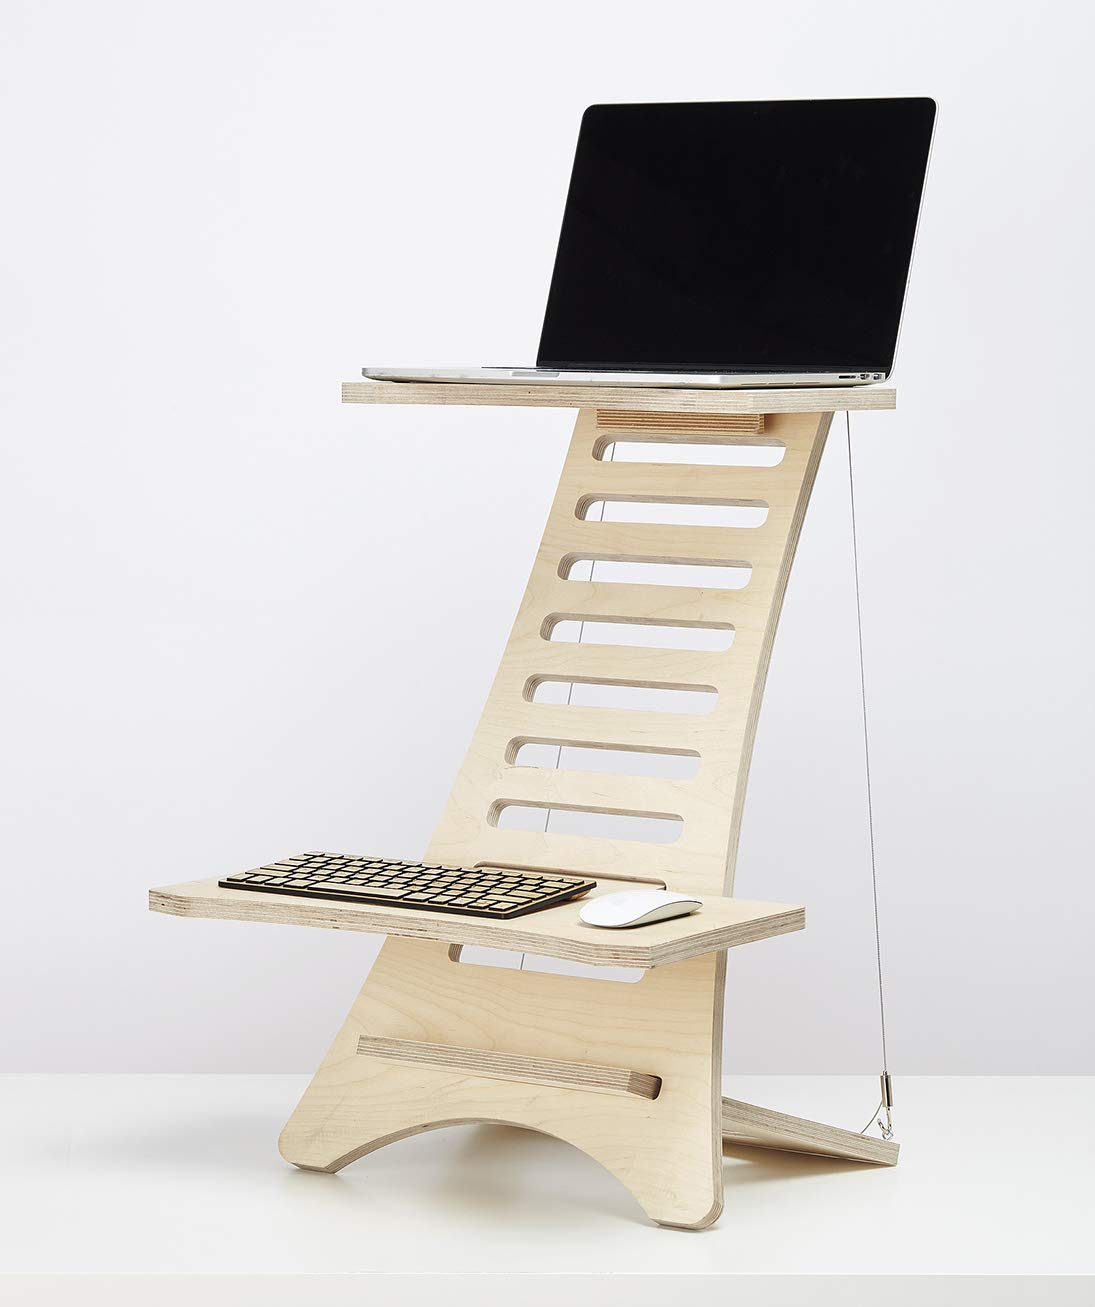 Standing Desk - Sit Stand Workstation MacBook PC Laptop Height Adjustable Natural Wood by HumbleWorks (Image #2)